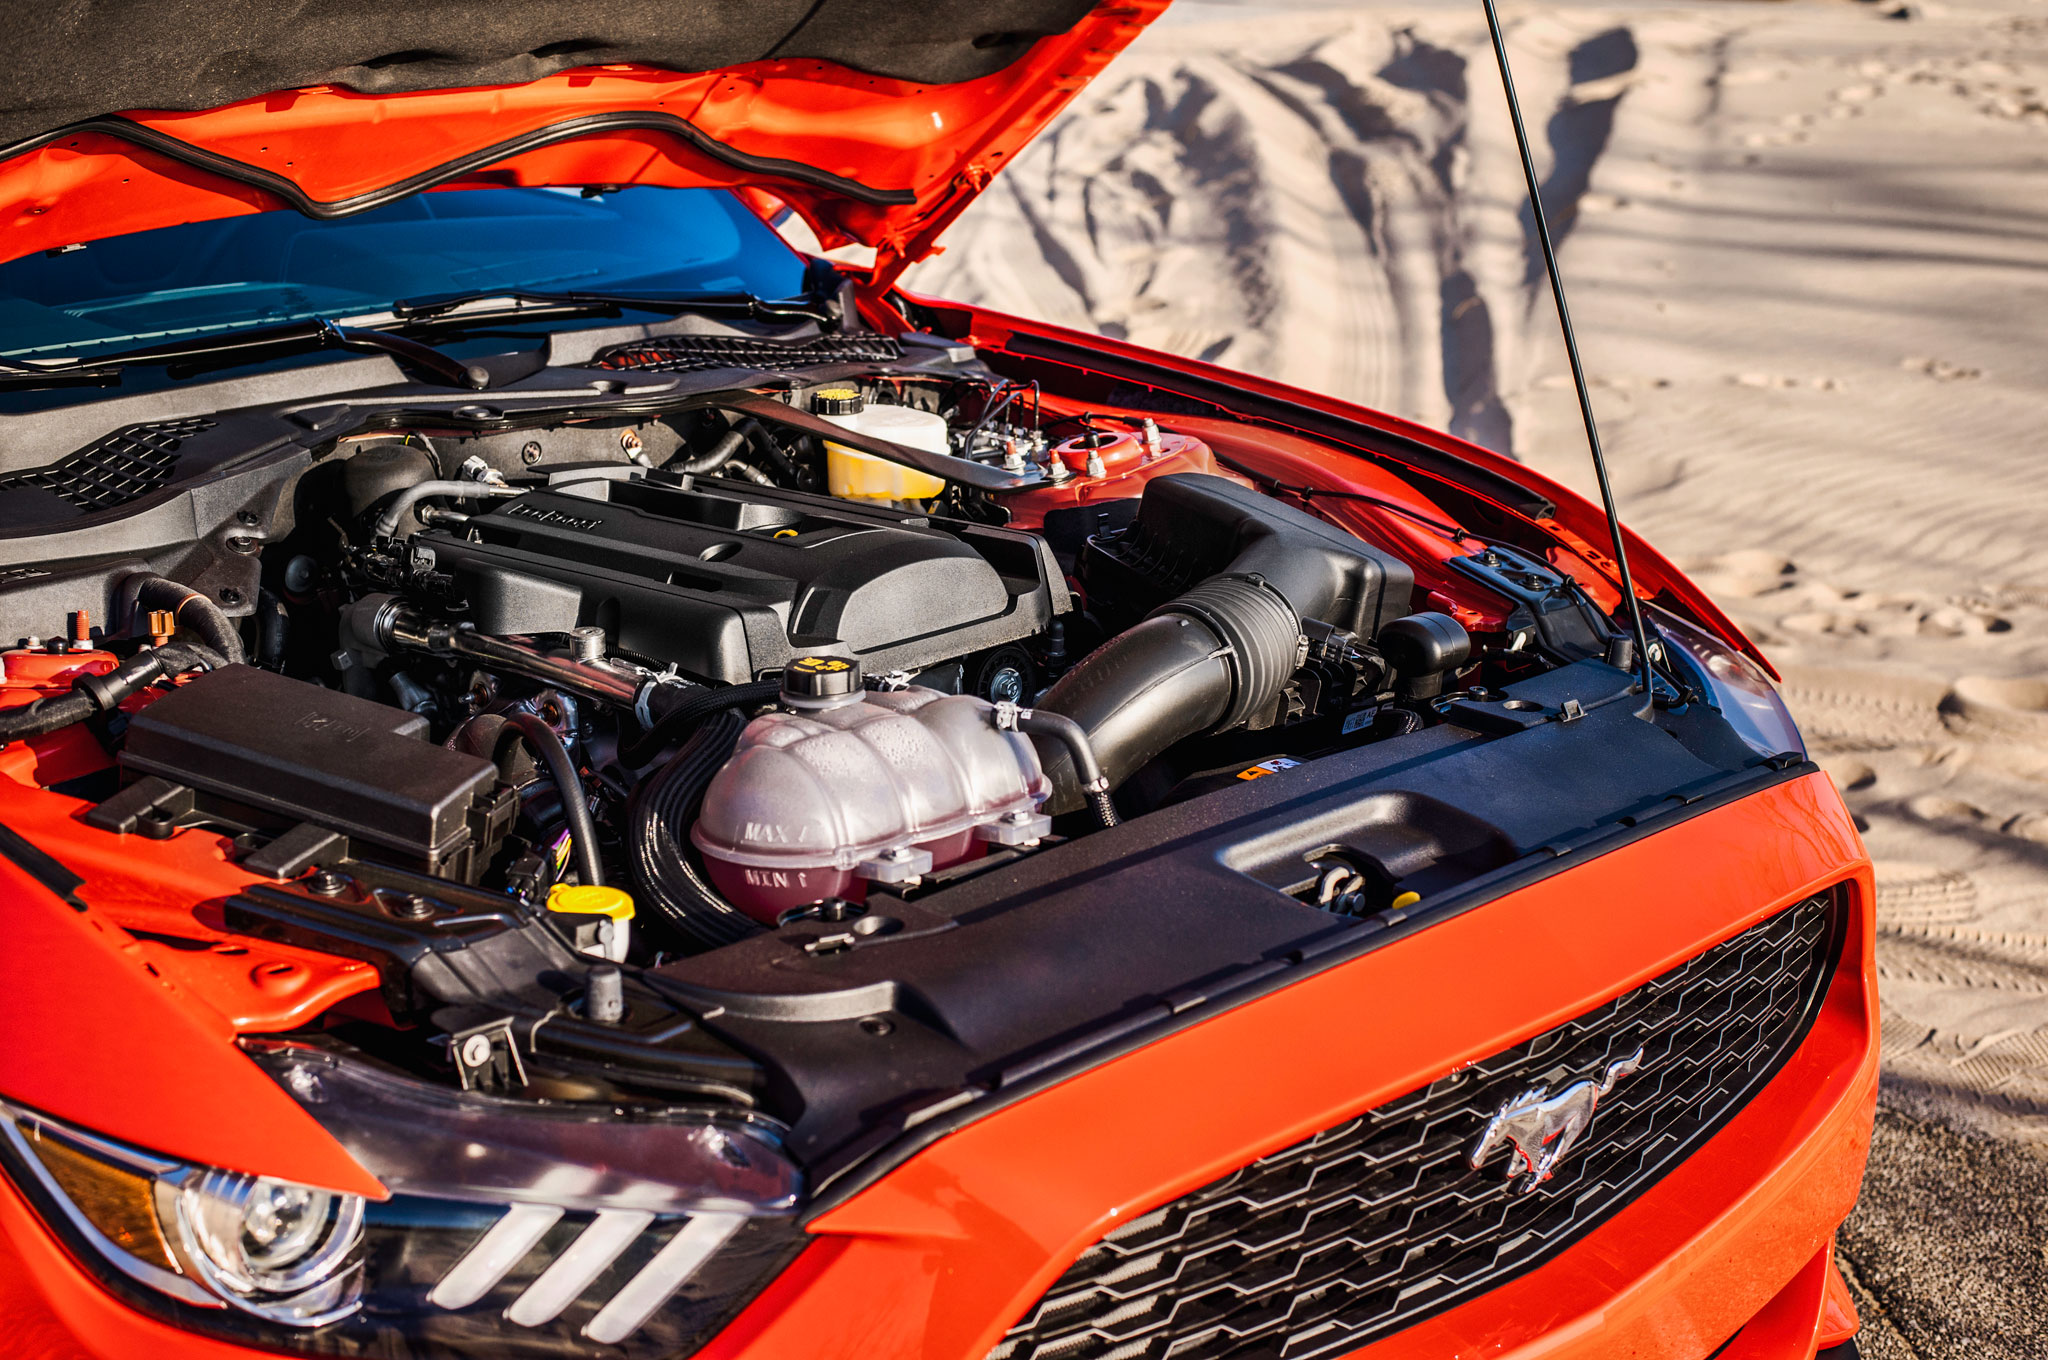 Ford Mustang 2.3 Ecoboost Engine Reviews